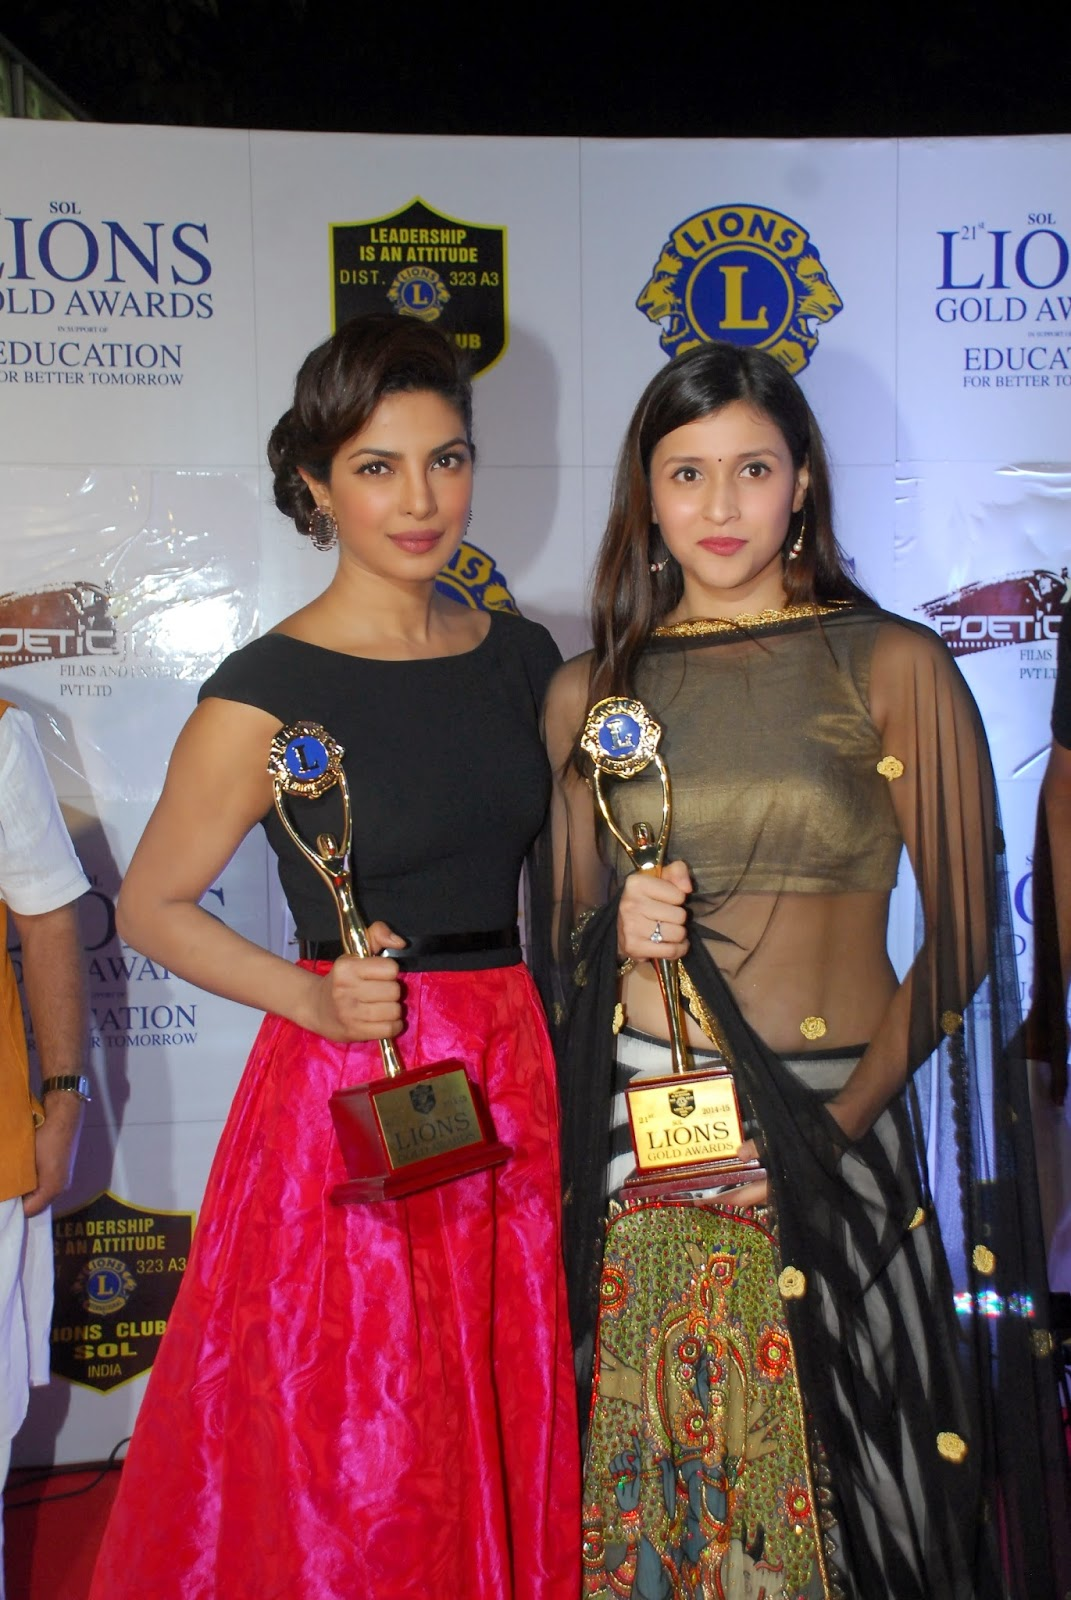 Priyanka Chopra at Lions Gold Awards 2015